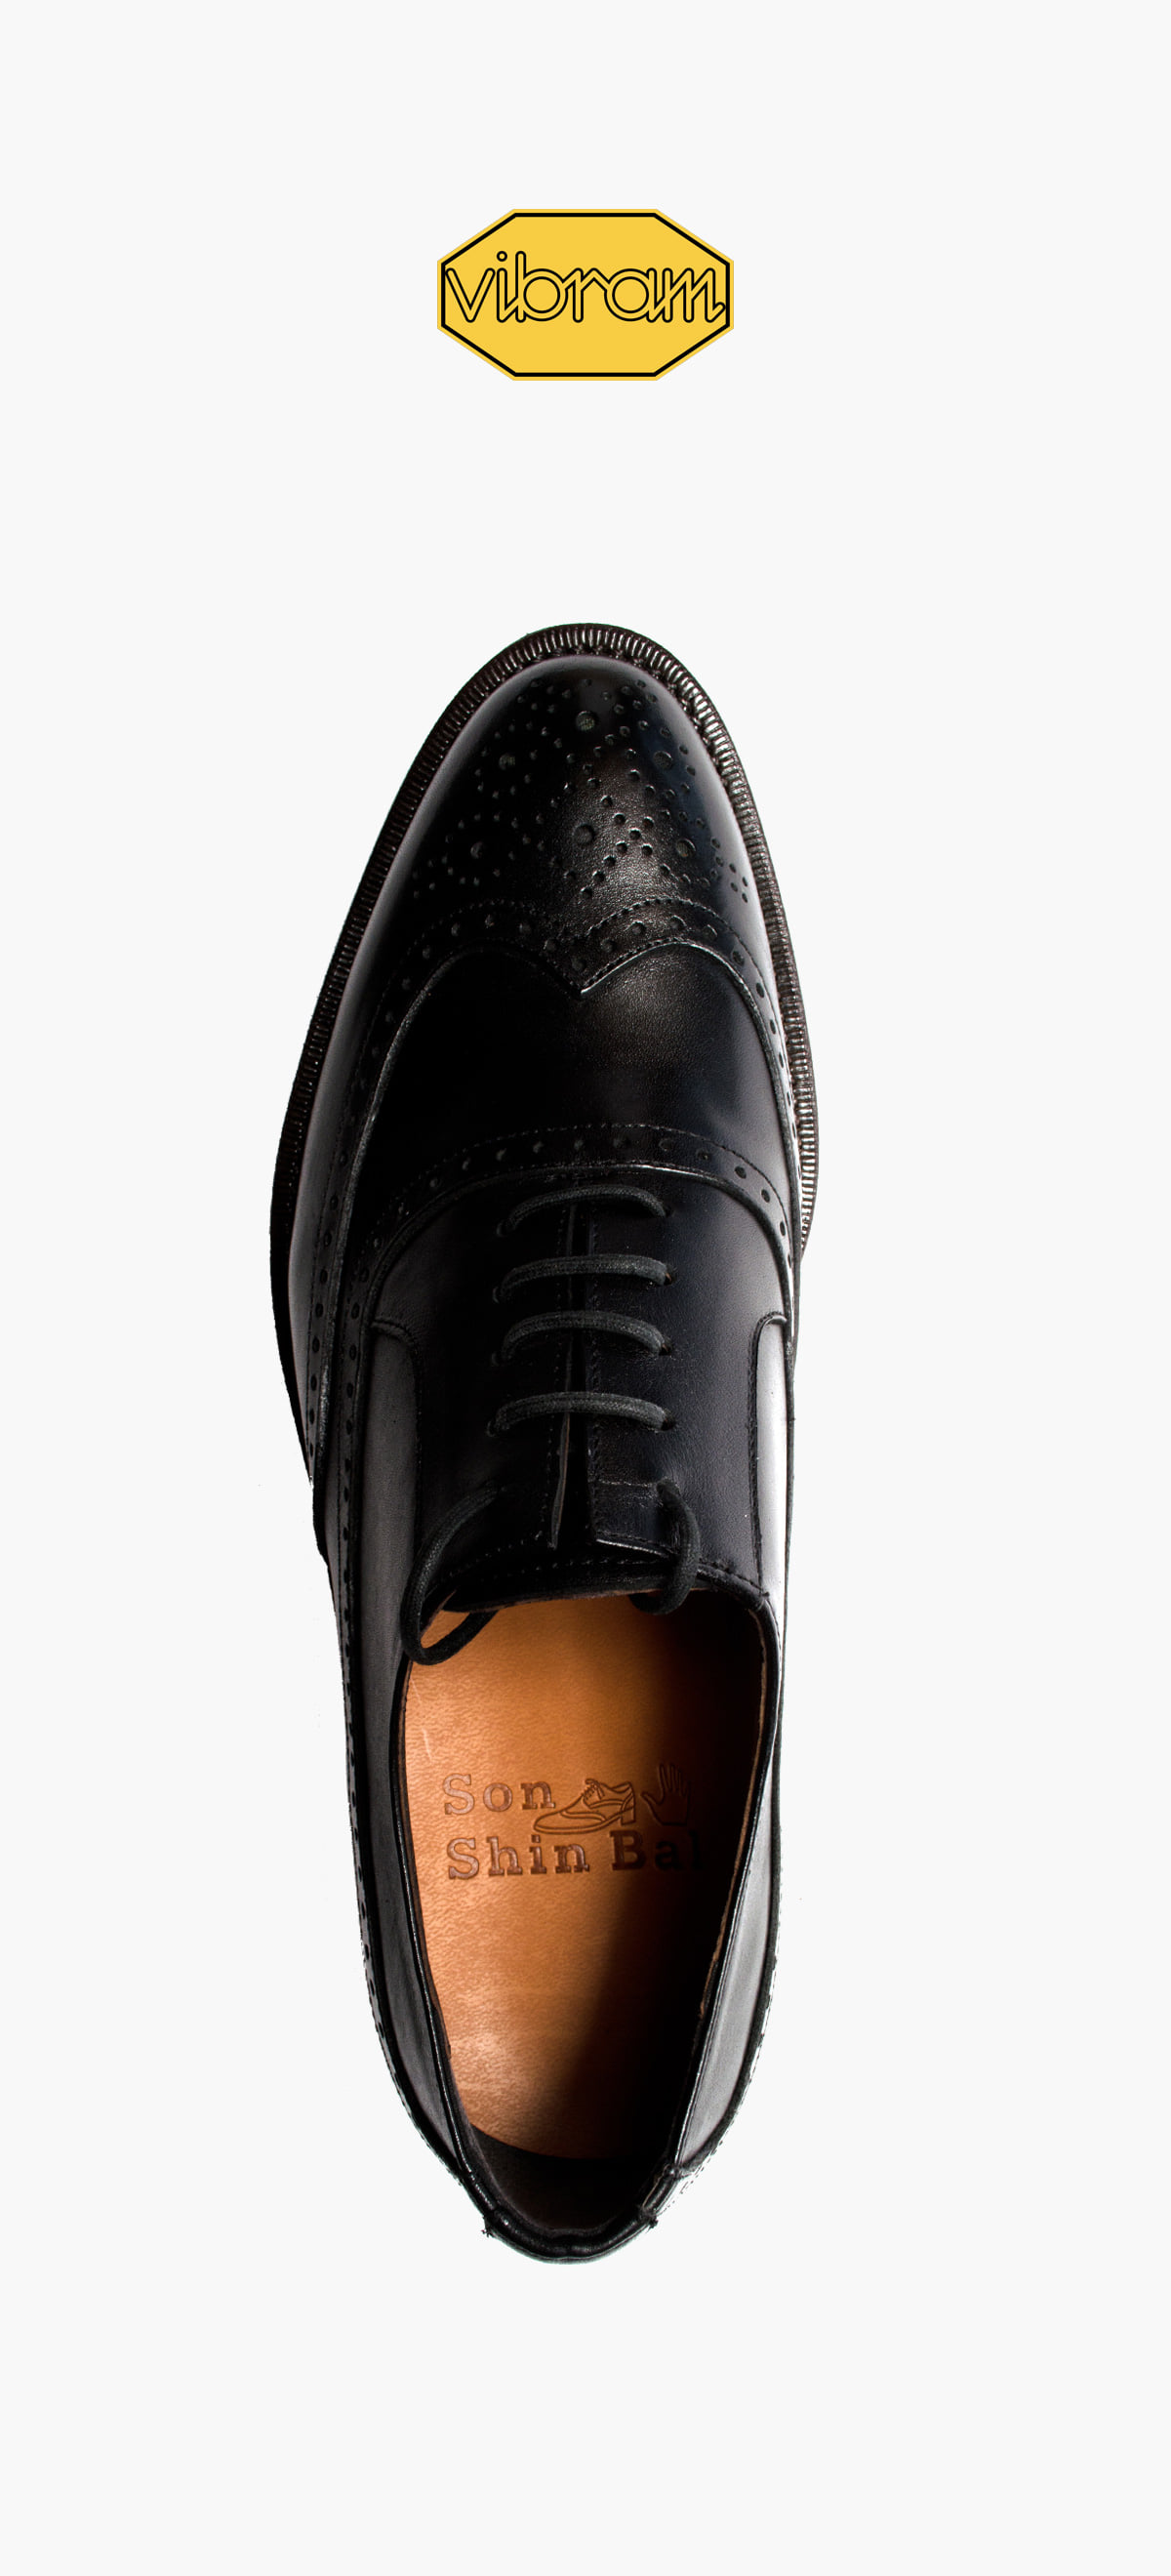 Wing Tip 8011-11 Black Kip